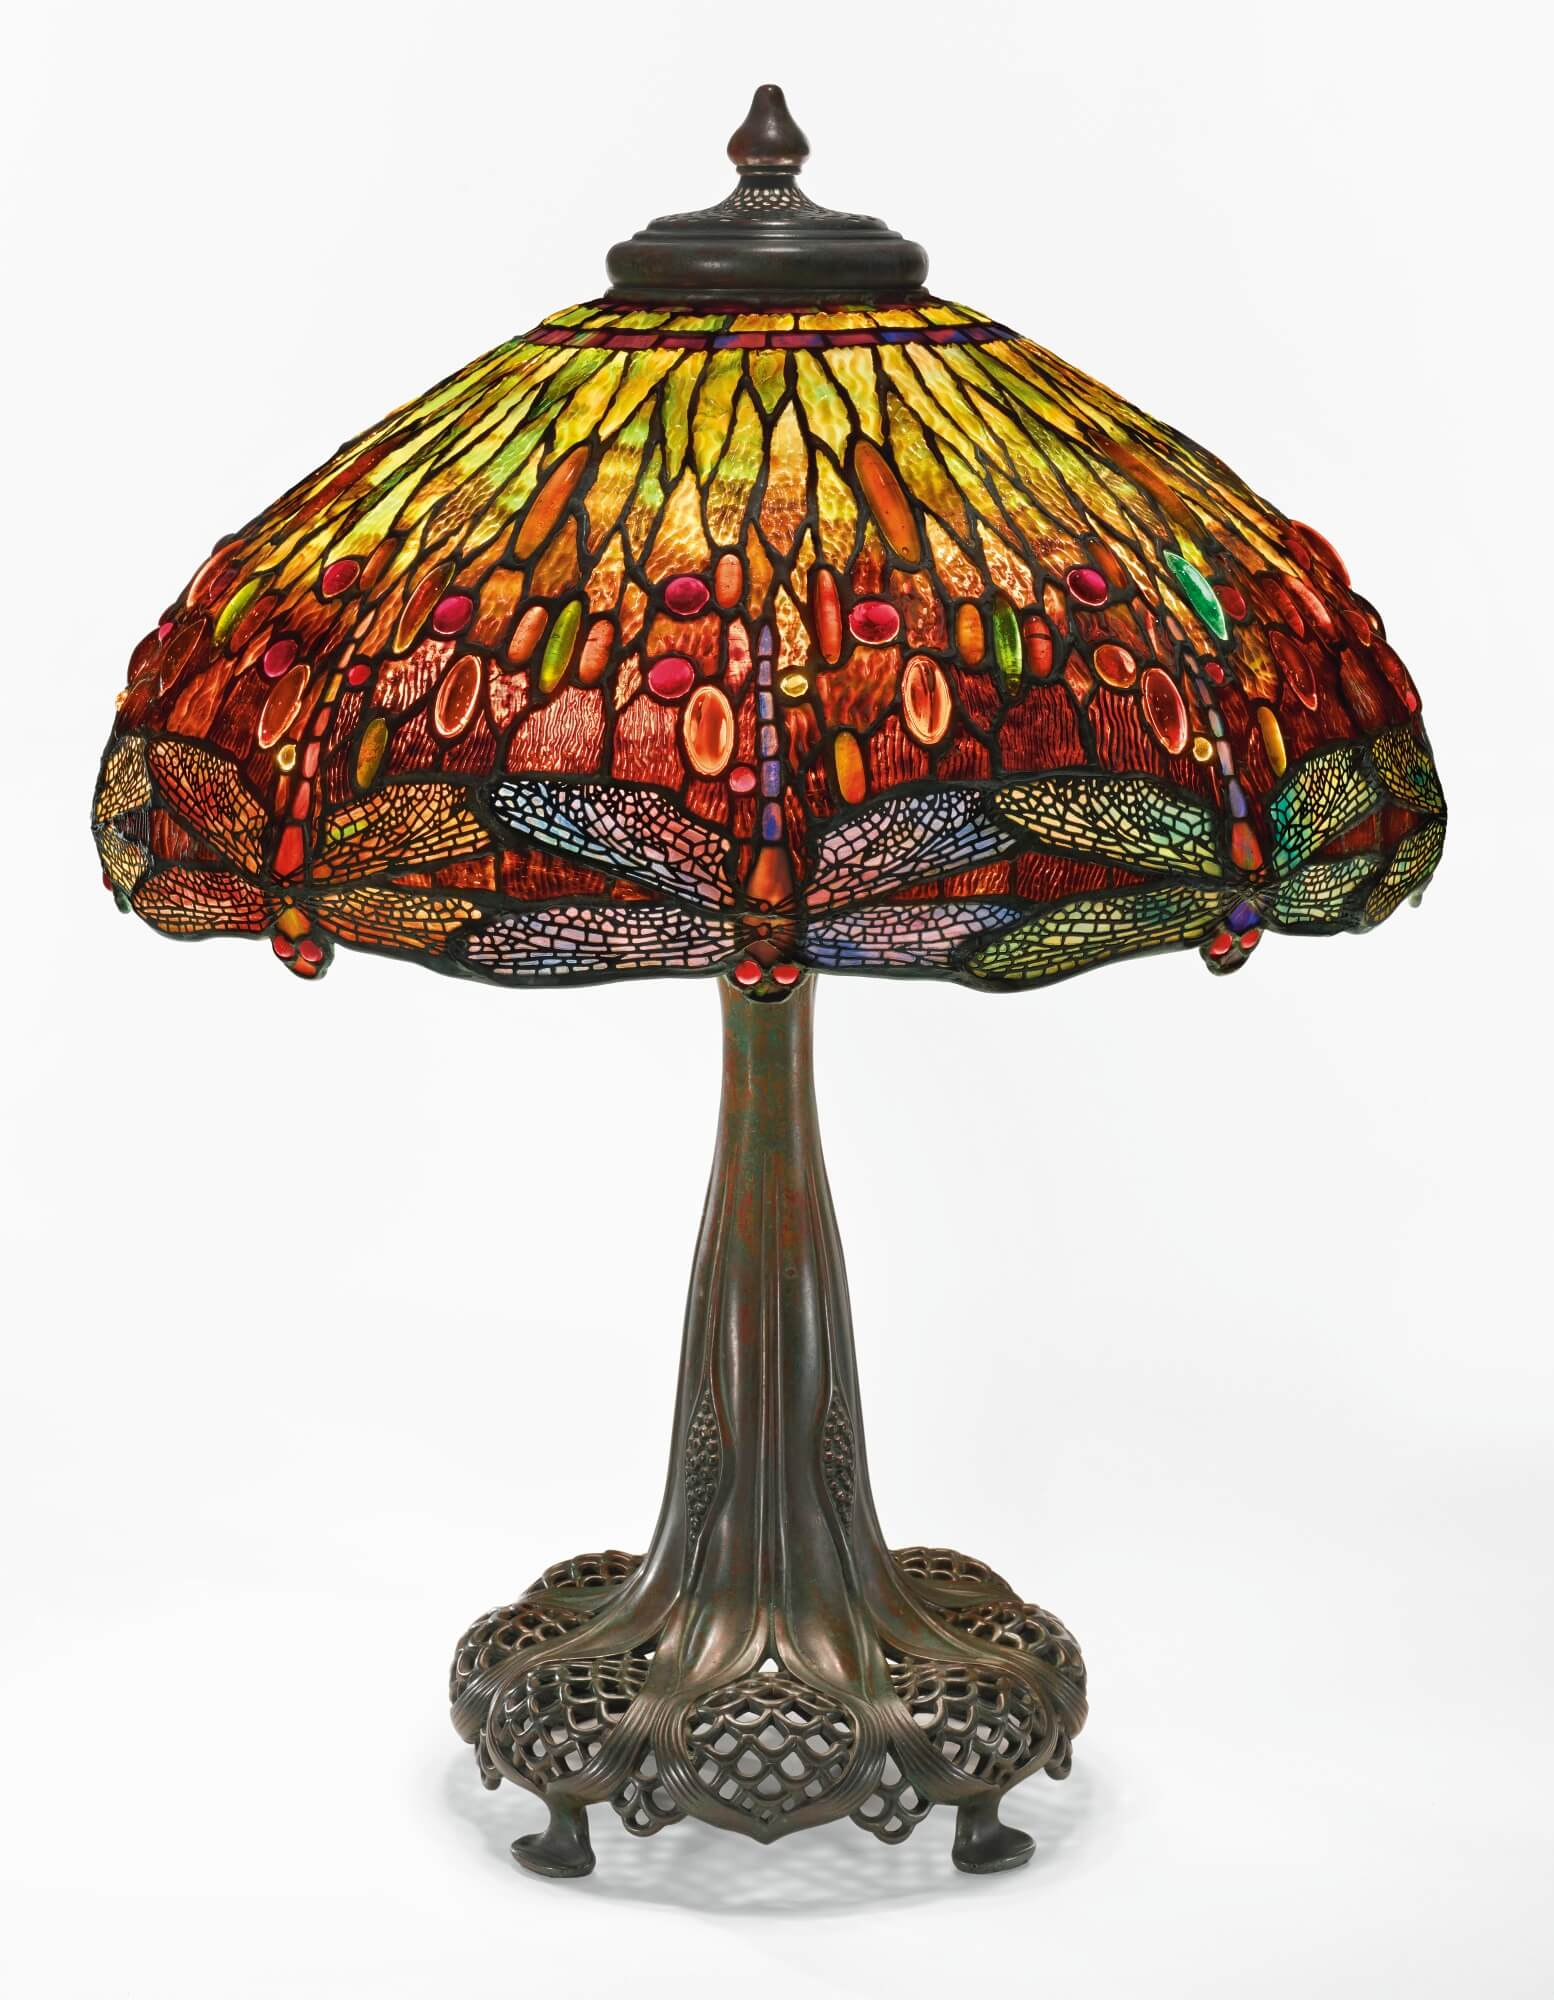 #2 Dragonfly Tiffany Table Lamp | Most Expensive Lamps In The World | Image  Source